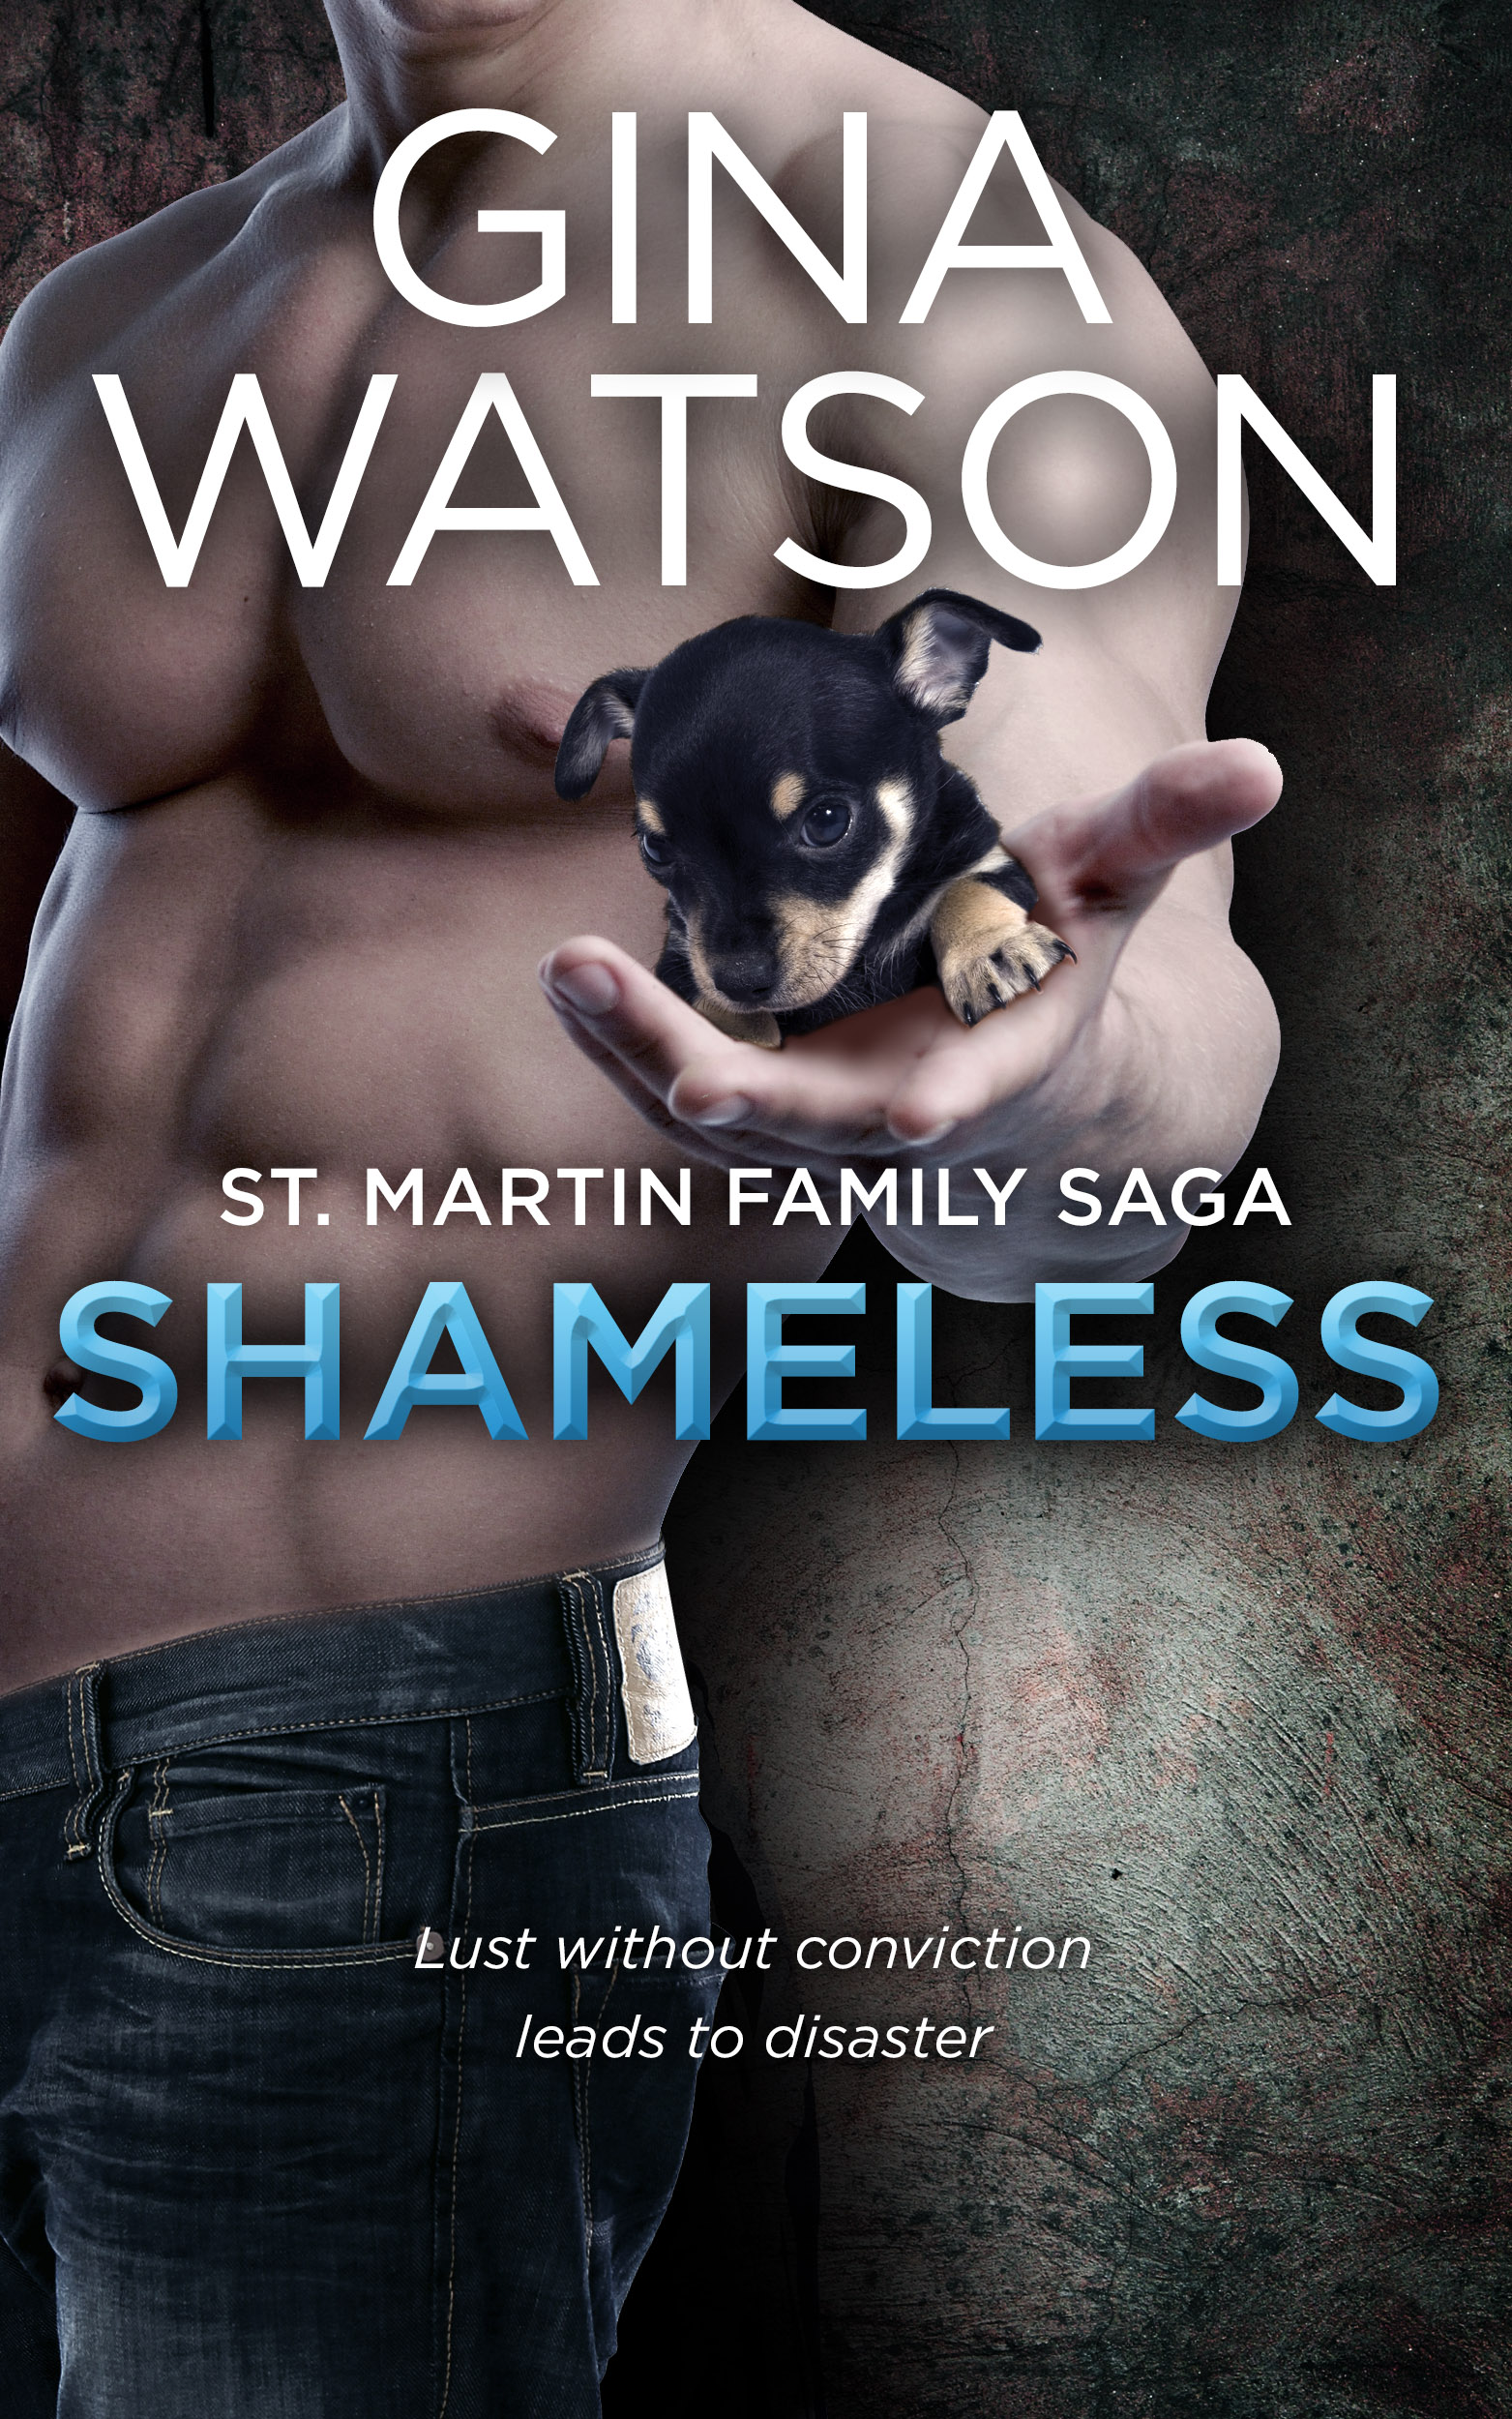 Gina Watson - Shameless (St. Martin Family Saga: Whiskey Cove)